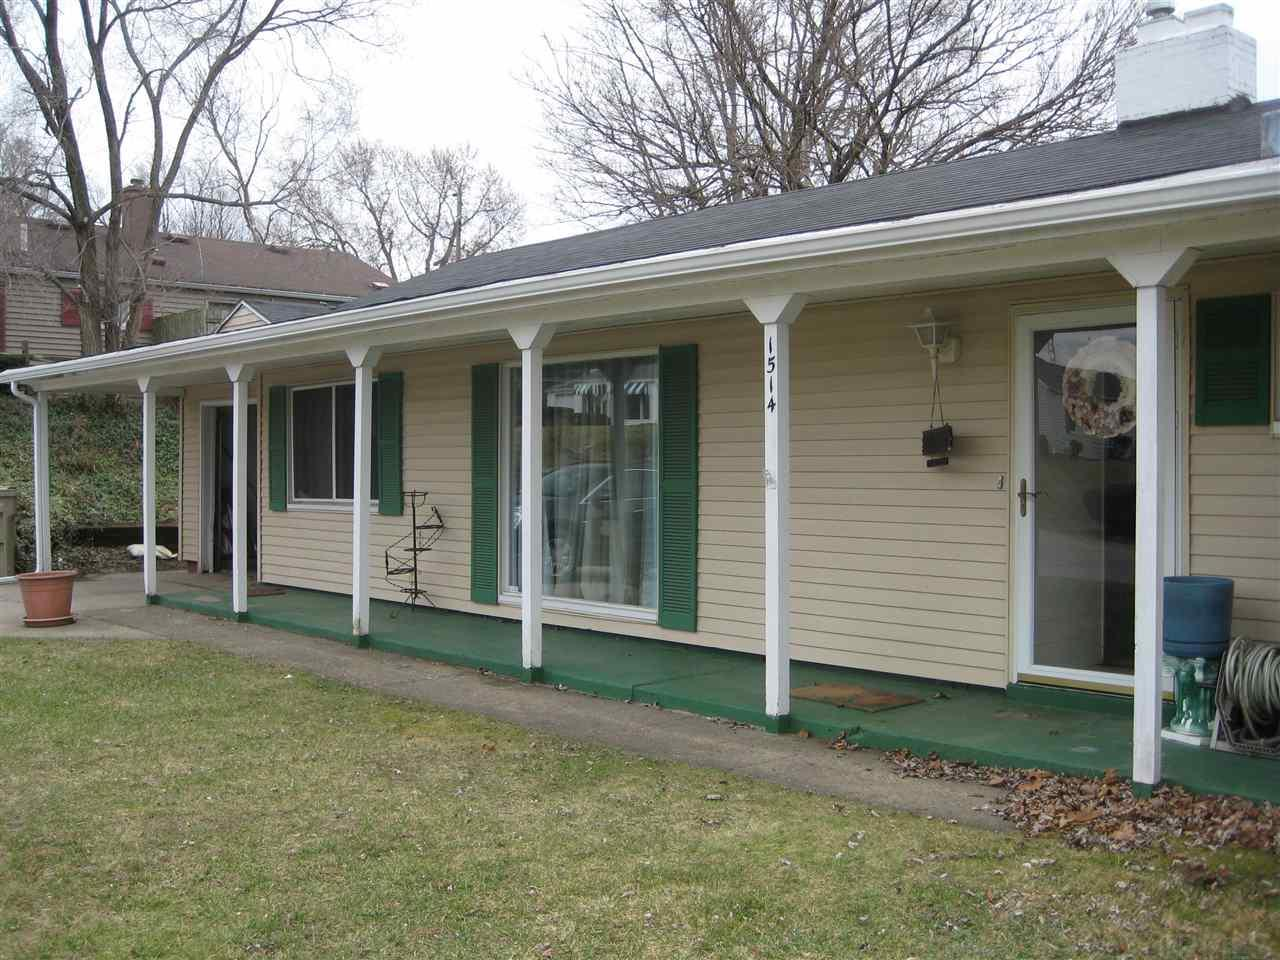 1514 southeast dr, South Bend, IN 46614